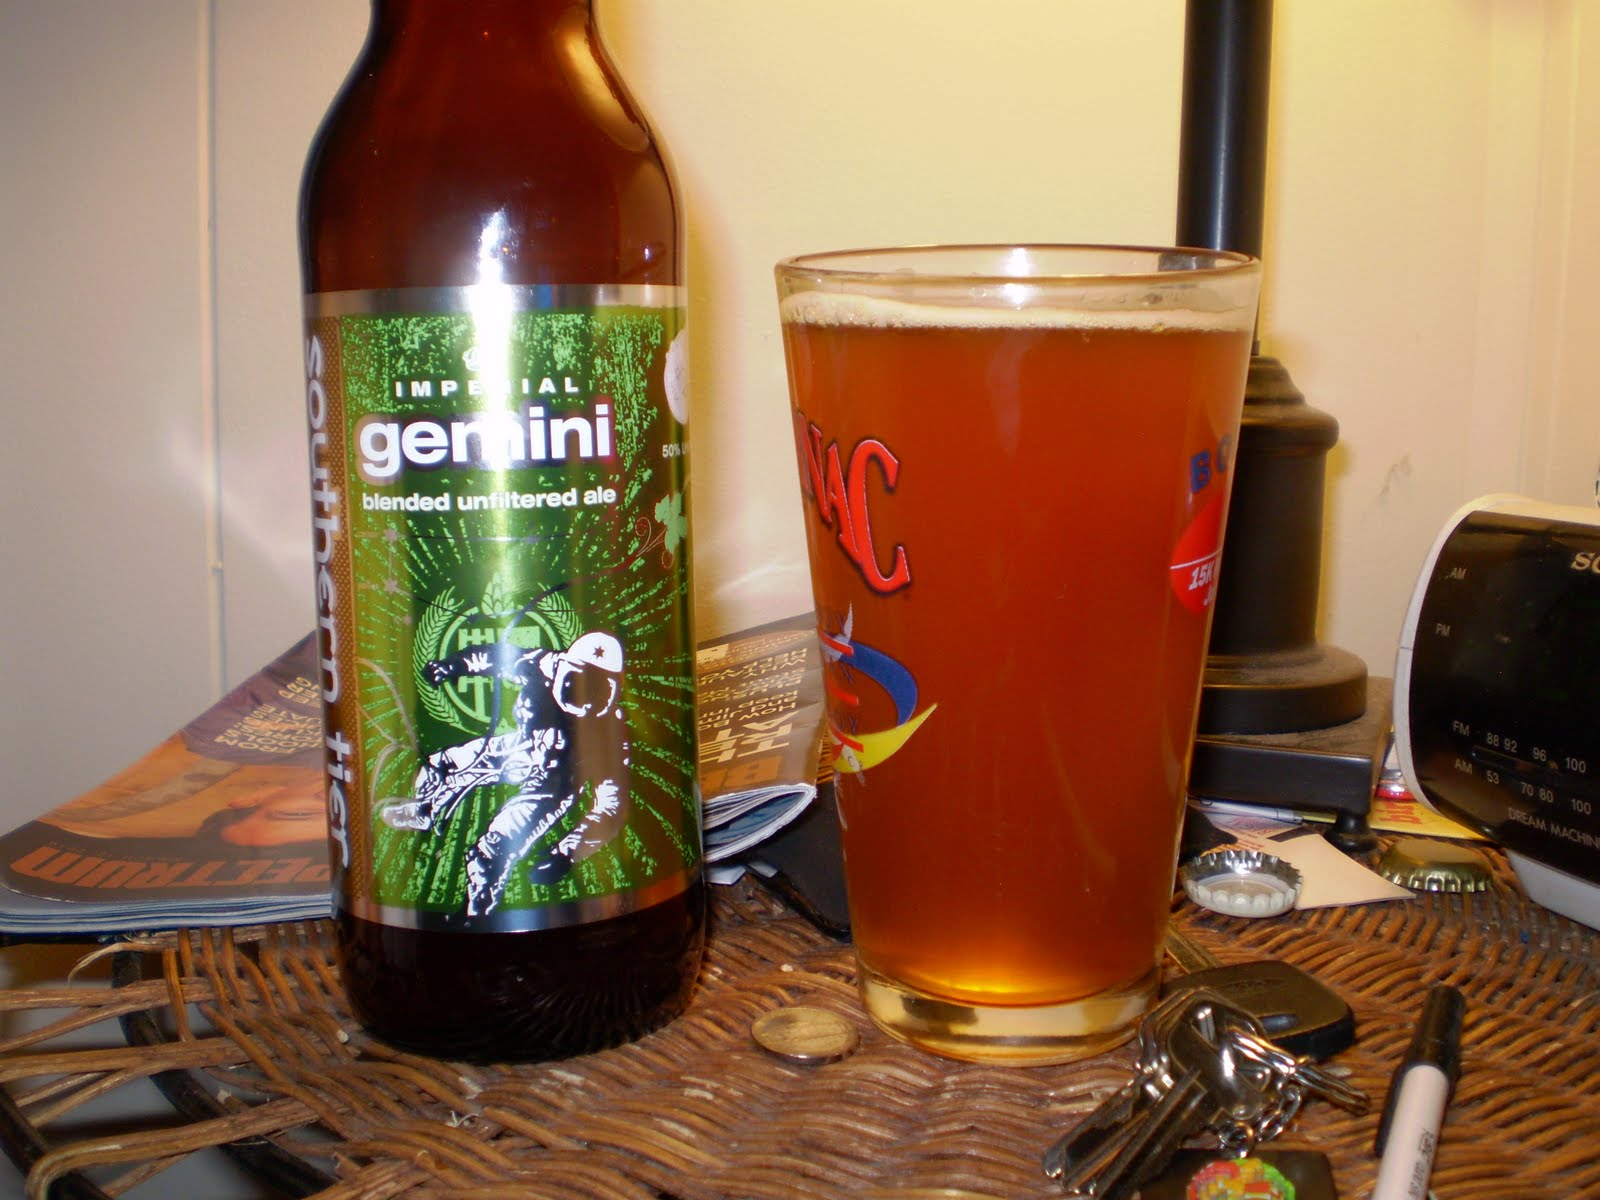 This Is What I Drink: March 2010